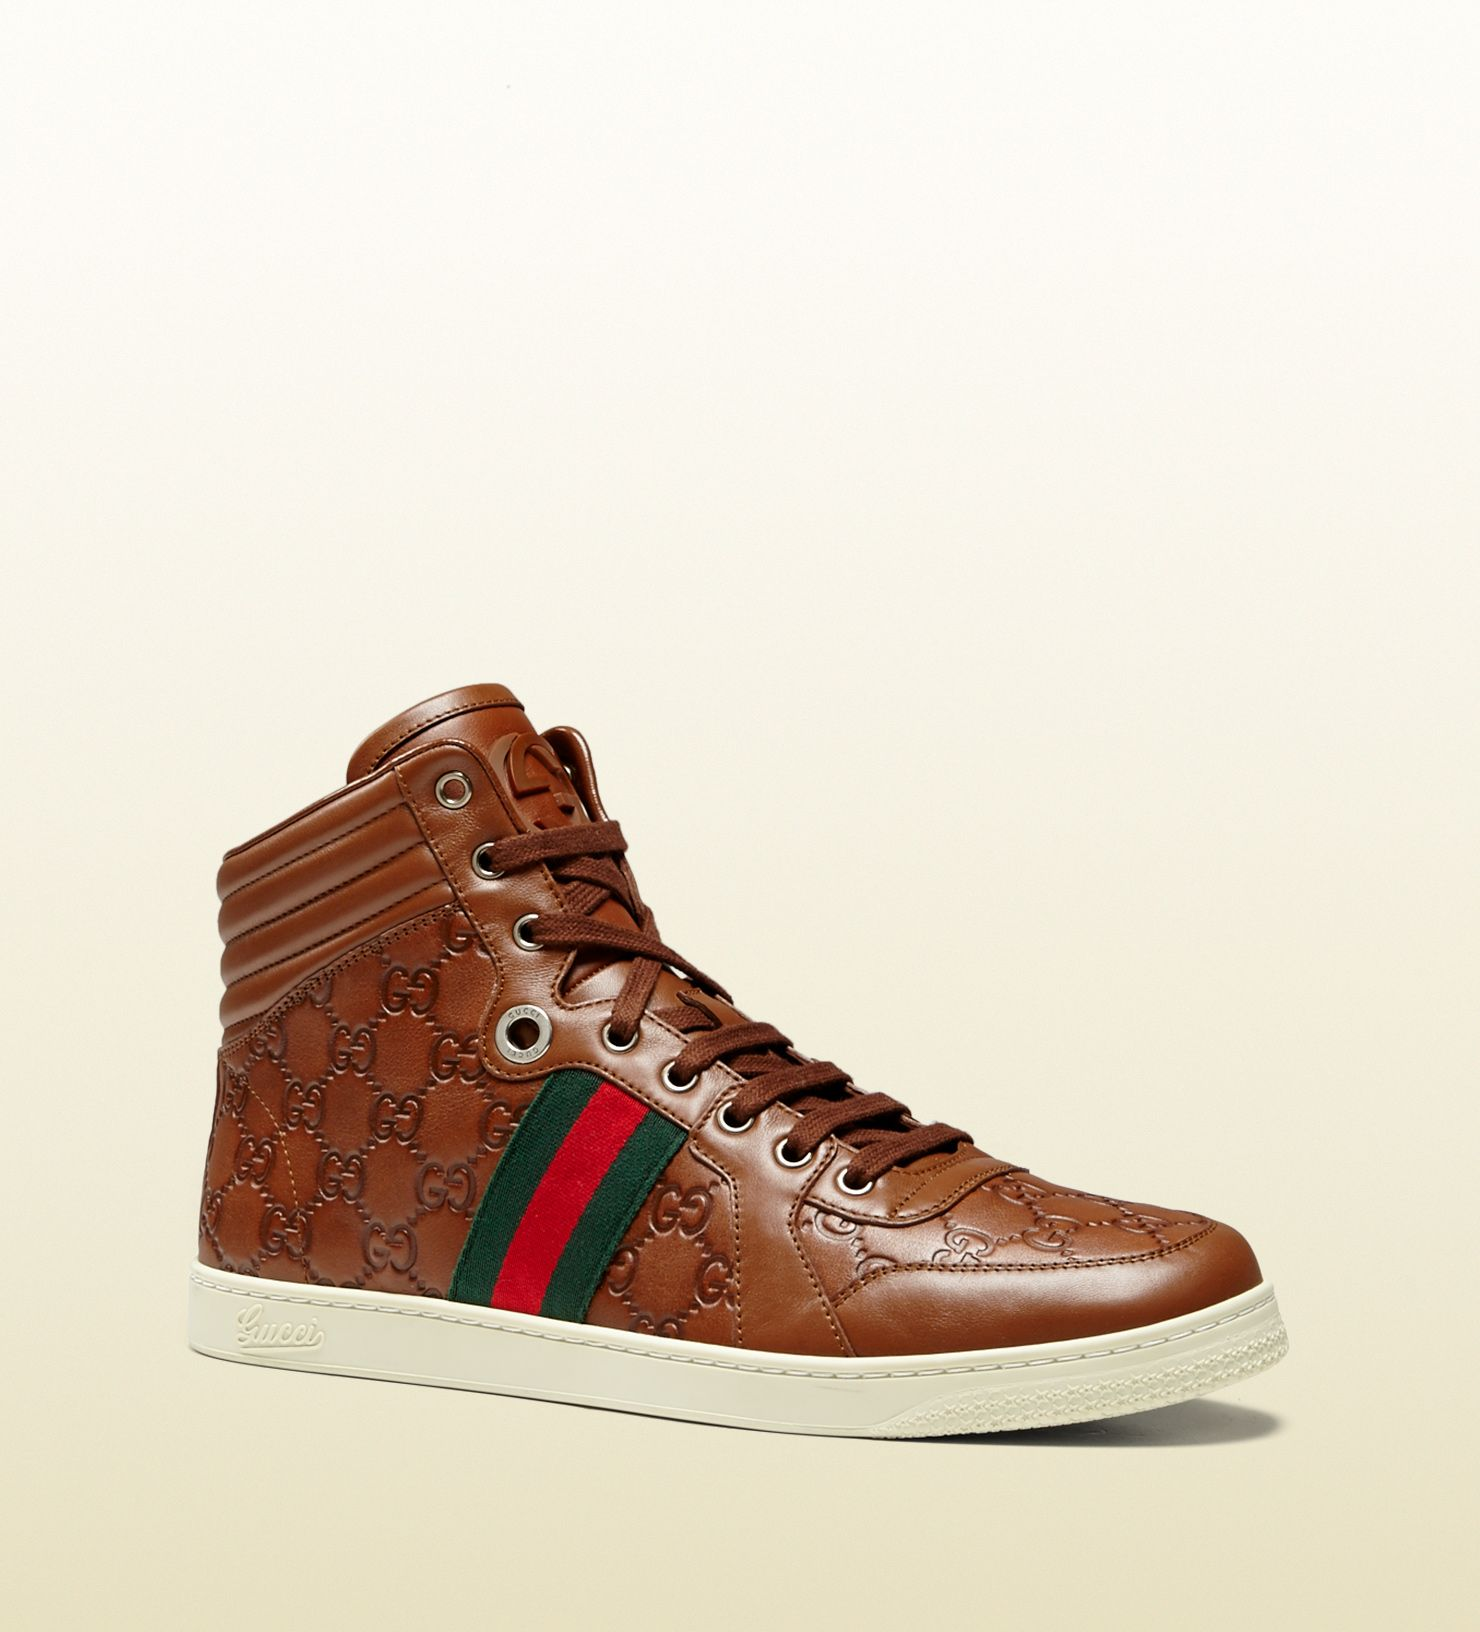 8b5e02f83c2ac Gucci - hi-top lace-up sneaker with interlocking G and signature web detail.  221825A9L902571 US 13 in these